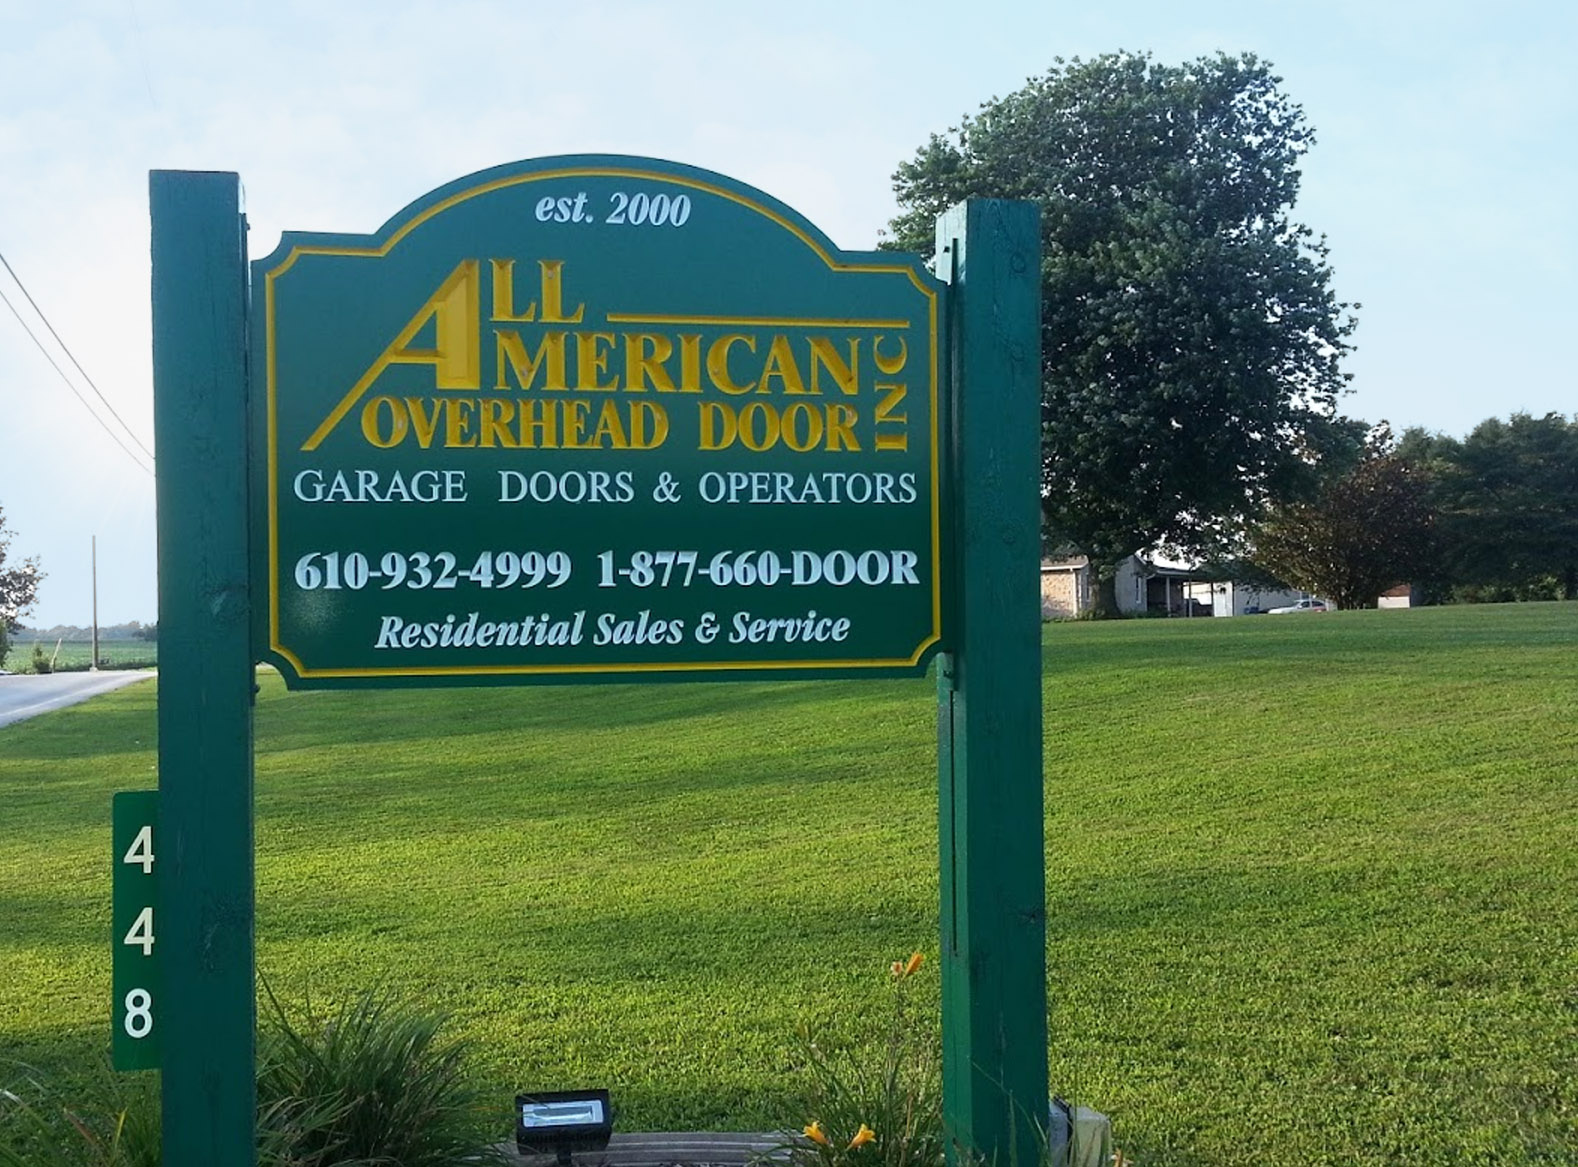 All American Overhead Door Street Sign